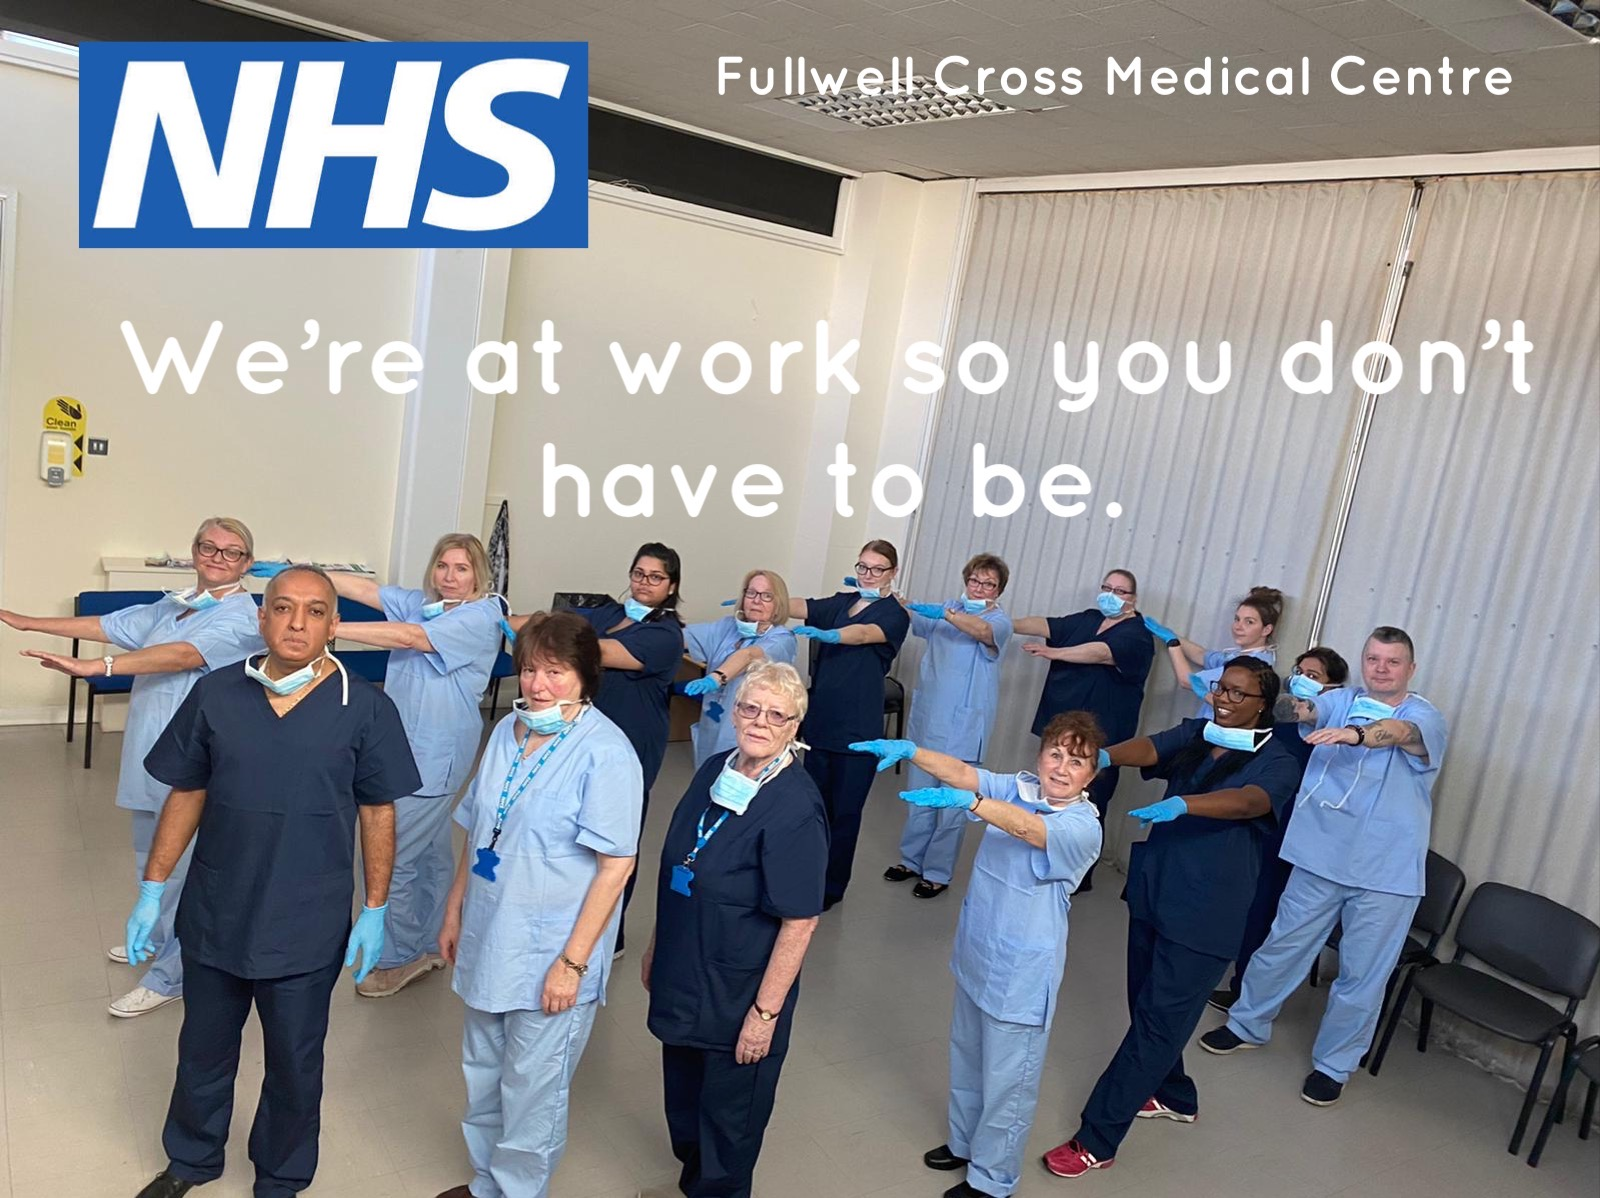 NHS Fullwell Cross Medical Centre We're at work so you don't have to be.